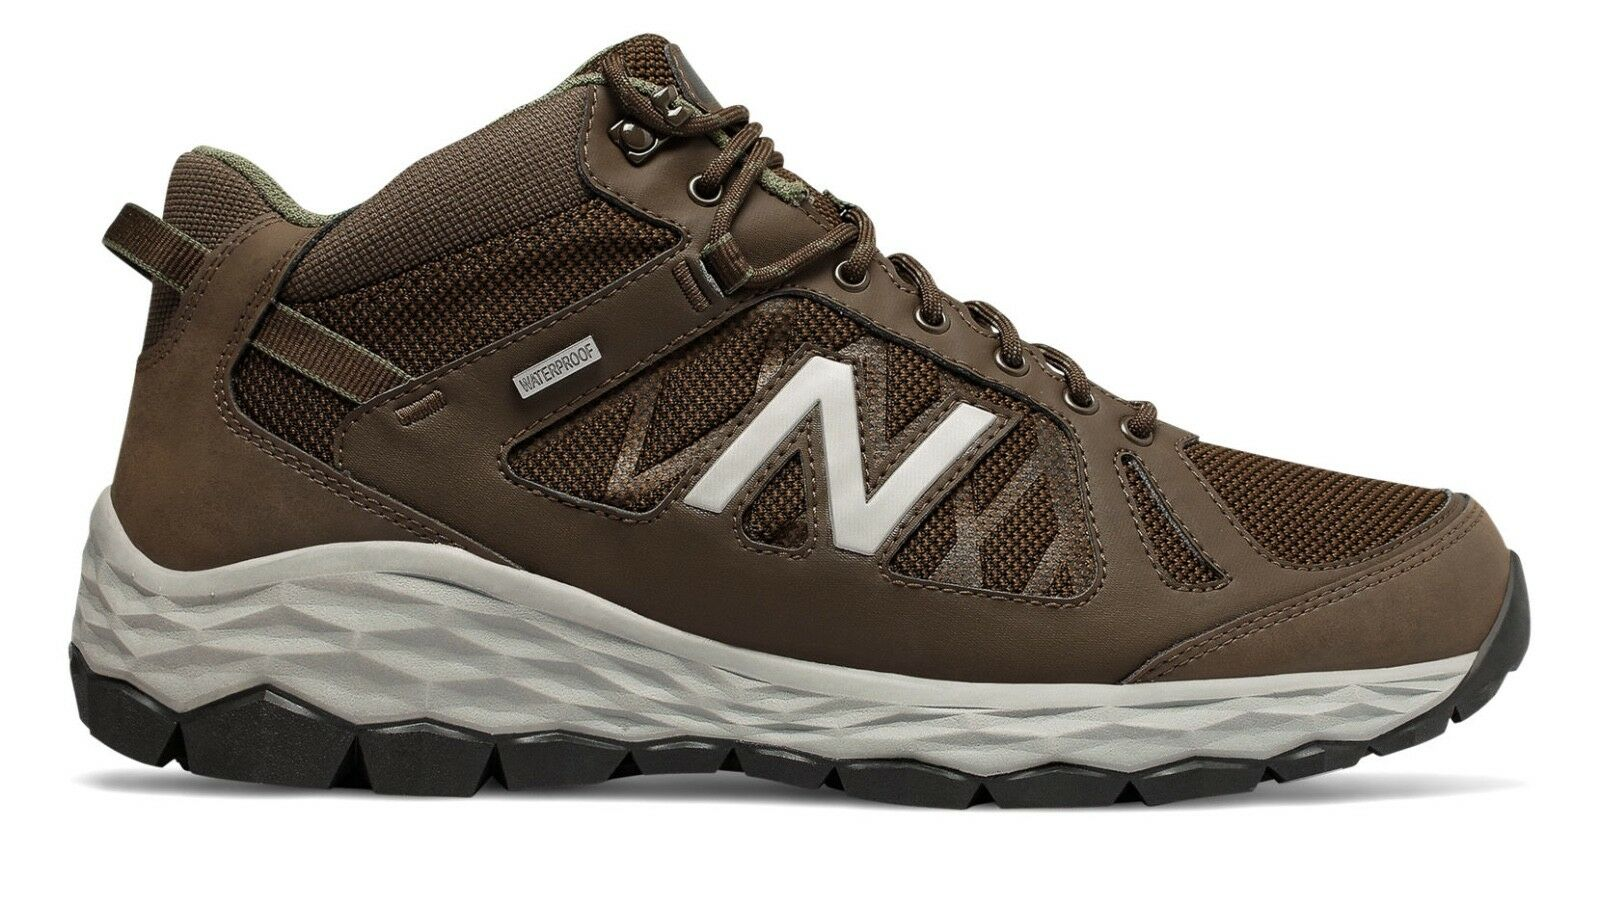 Men's New Balance 1450 US 7 1 2 2E MW1450WN Trail Walking